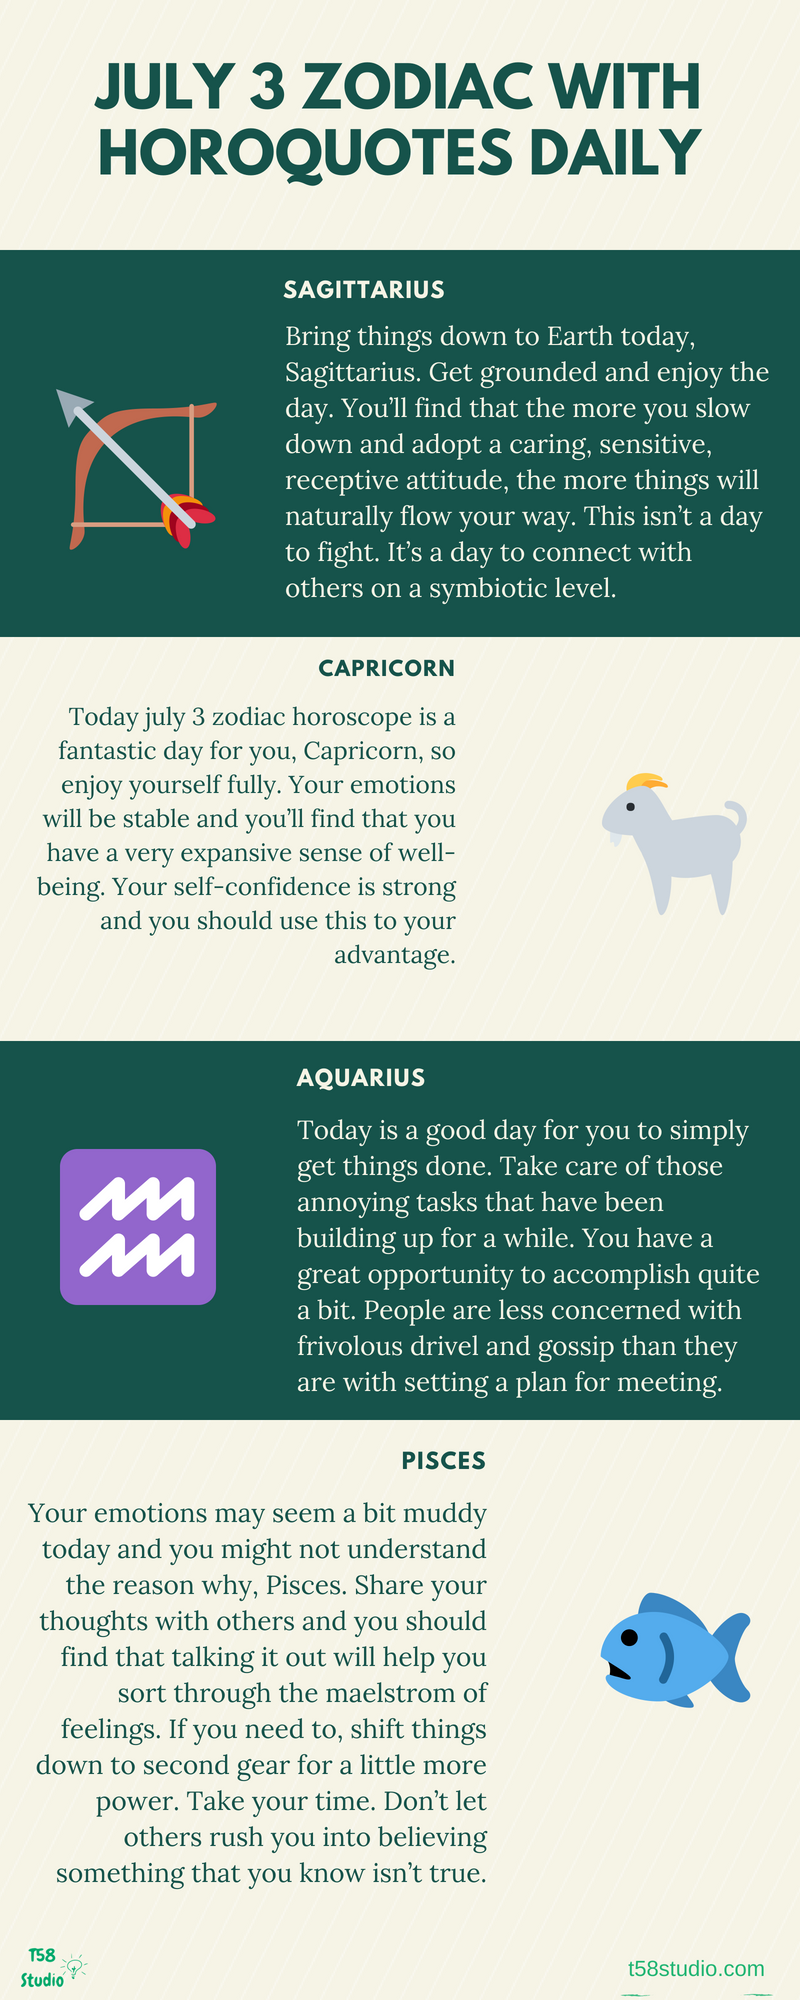 July 3 zodiac horoscope 2018 with horoquotes daily blogs